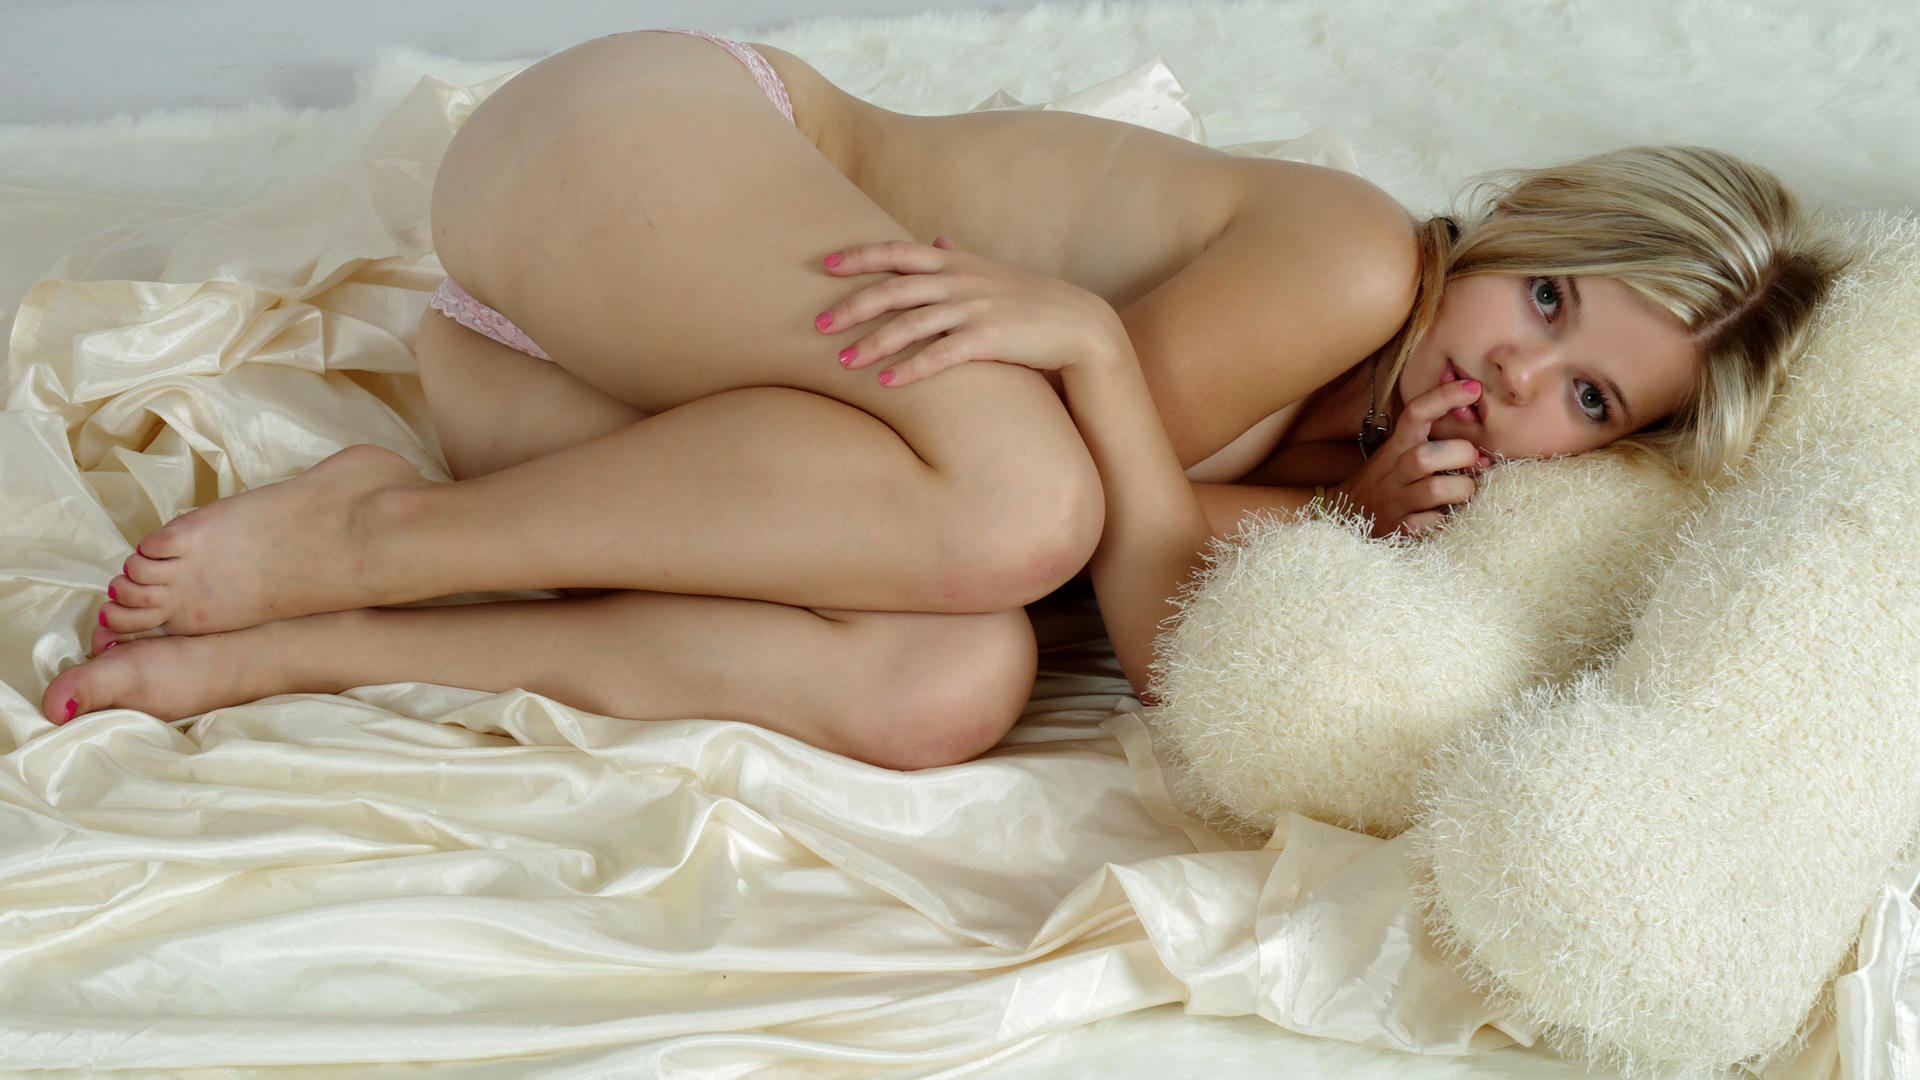 nude teen girl teddy